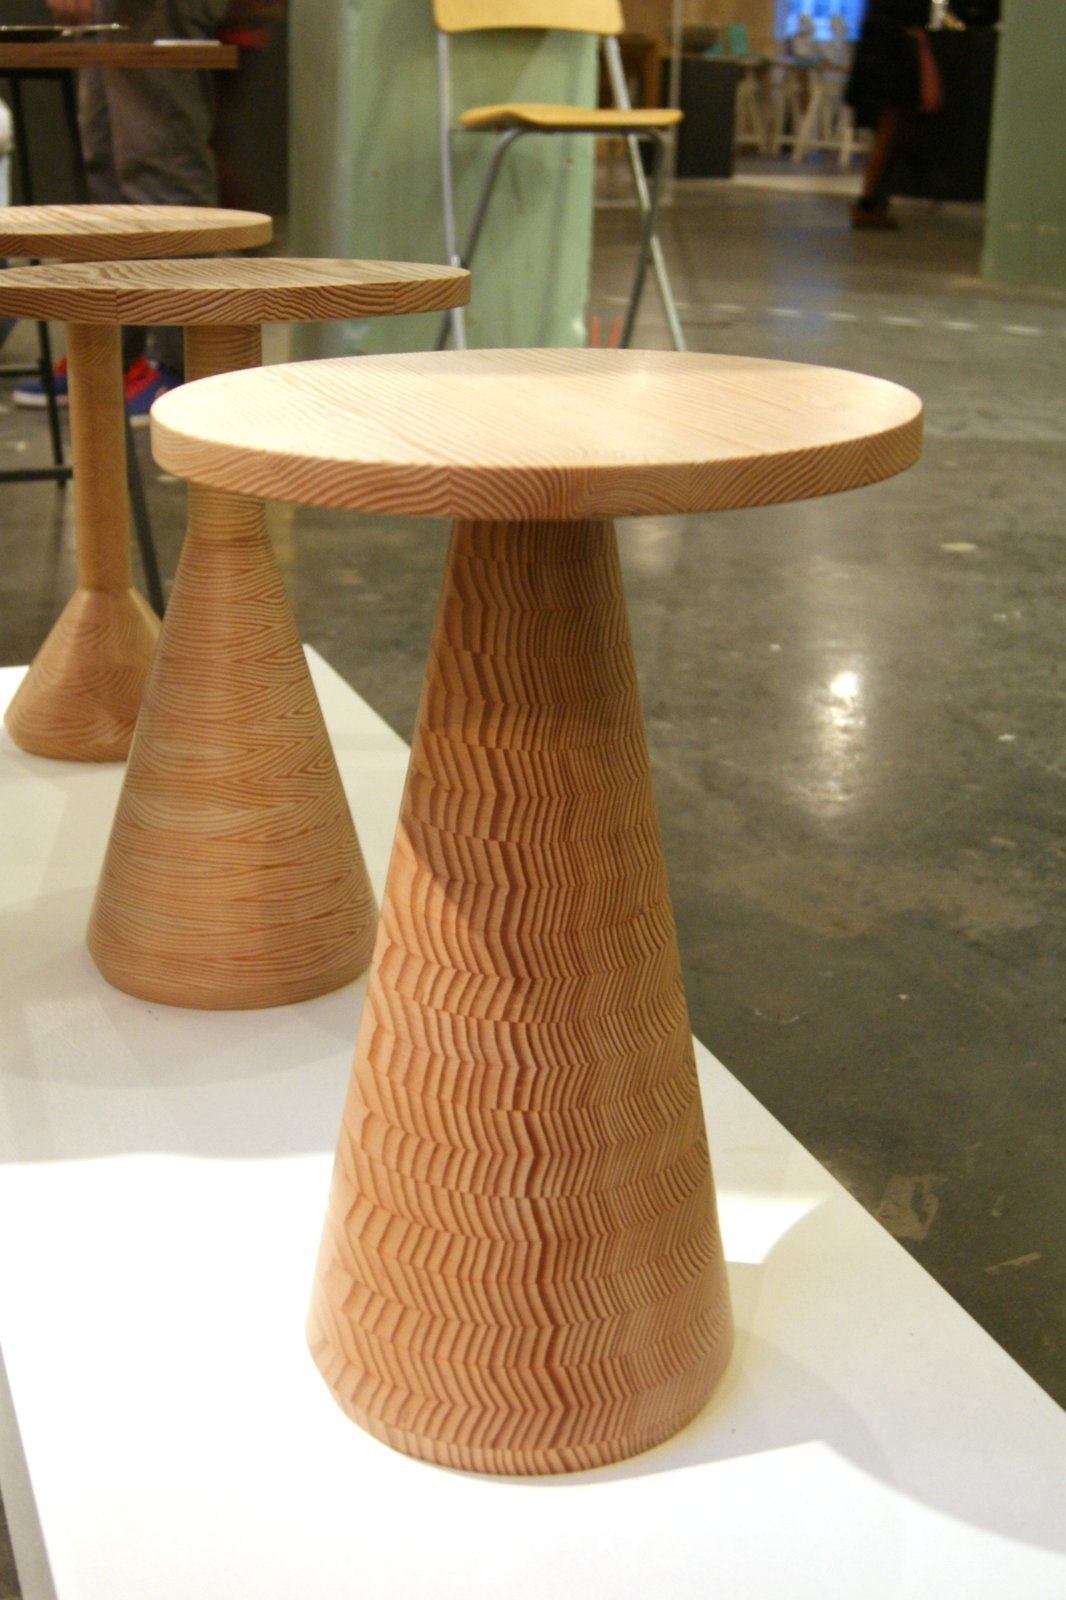 Decorative Wood  Intricate inlays, colorful resins and cleverly cut timbers were spotted on the stands of both established and emerging designers.  The Douglas Fir used to make Gavin Coyle's Jac tables is sawn and stacked together in a carefully constructed sequence that transforms the timber's annual growth rings into a decorative feature.  Key Trends from 2013 London Design Festival by Ali Morris